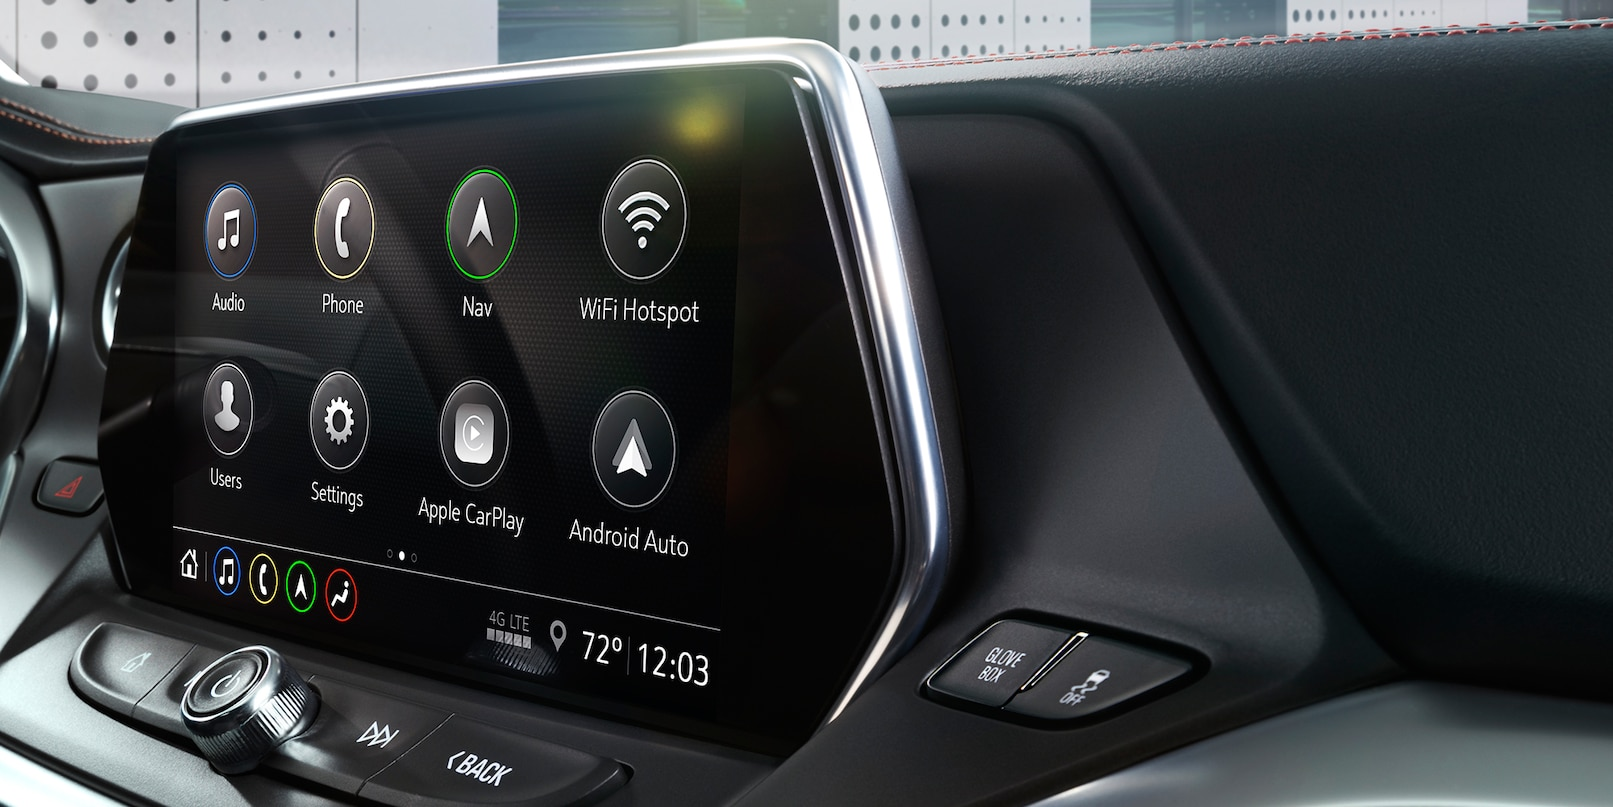 Touchscreen Display in the 2019 Blazer